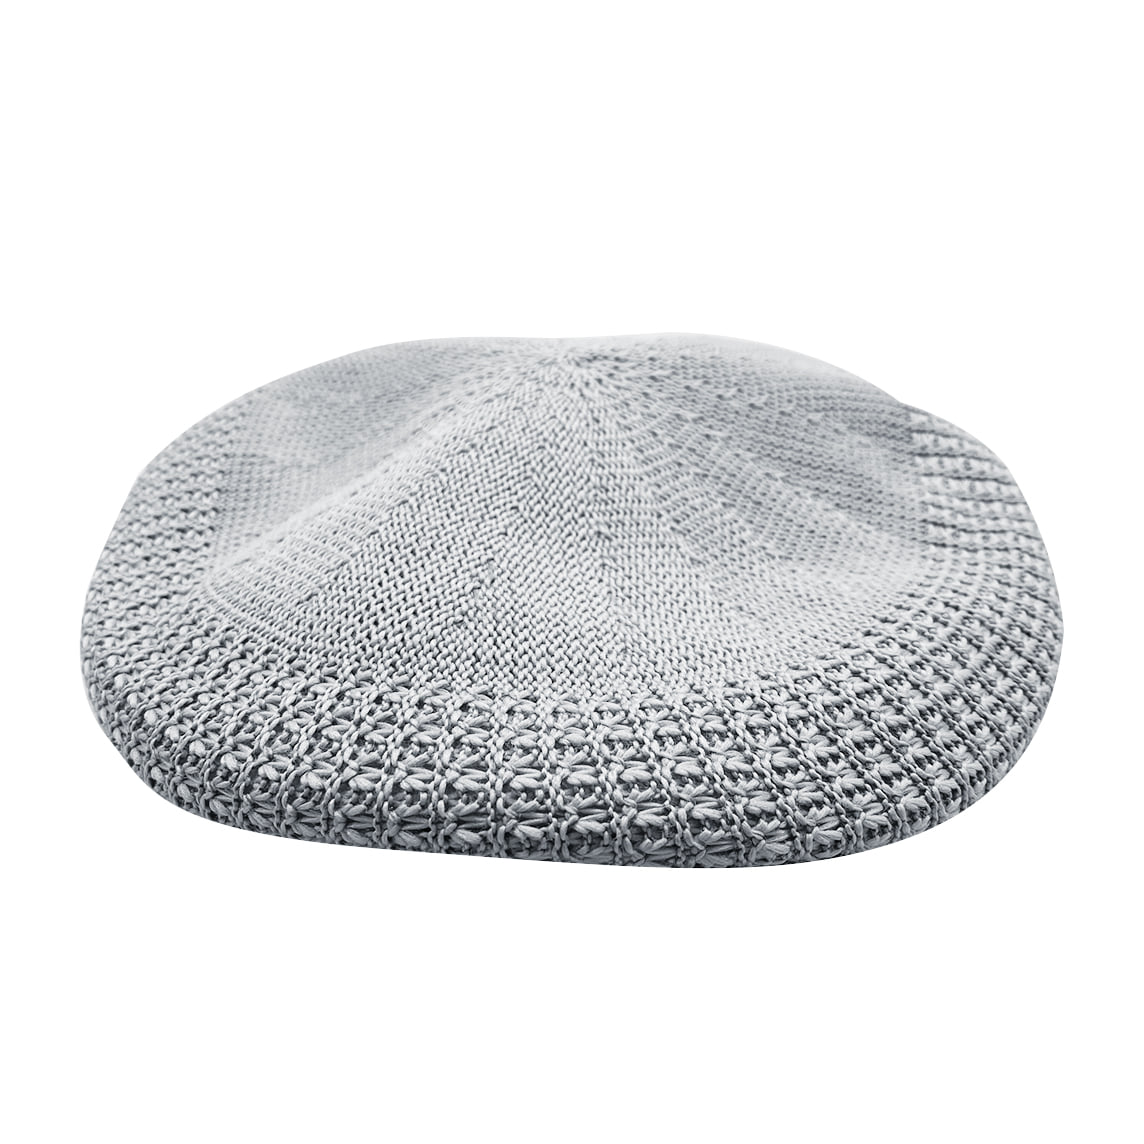 Ivy Cap (Light Grey)